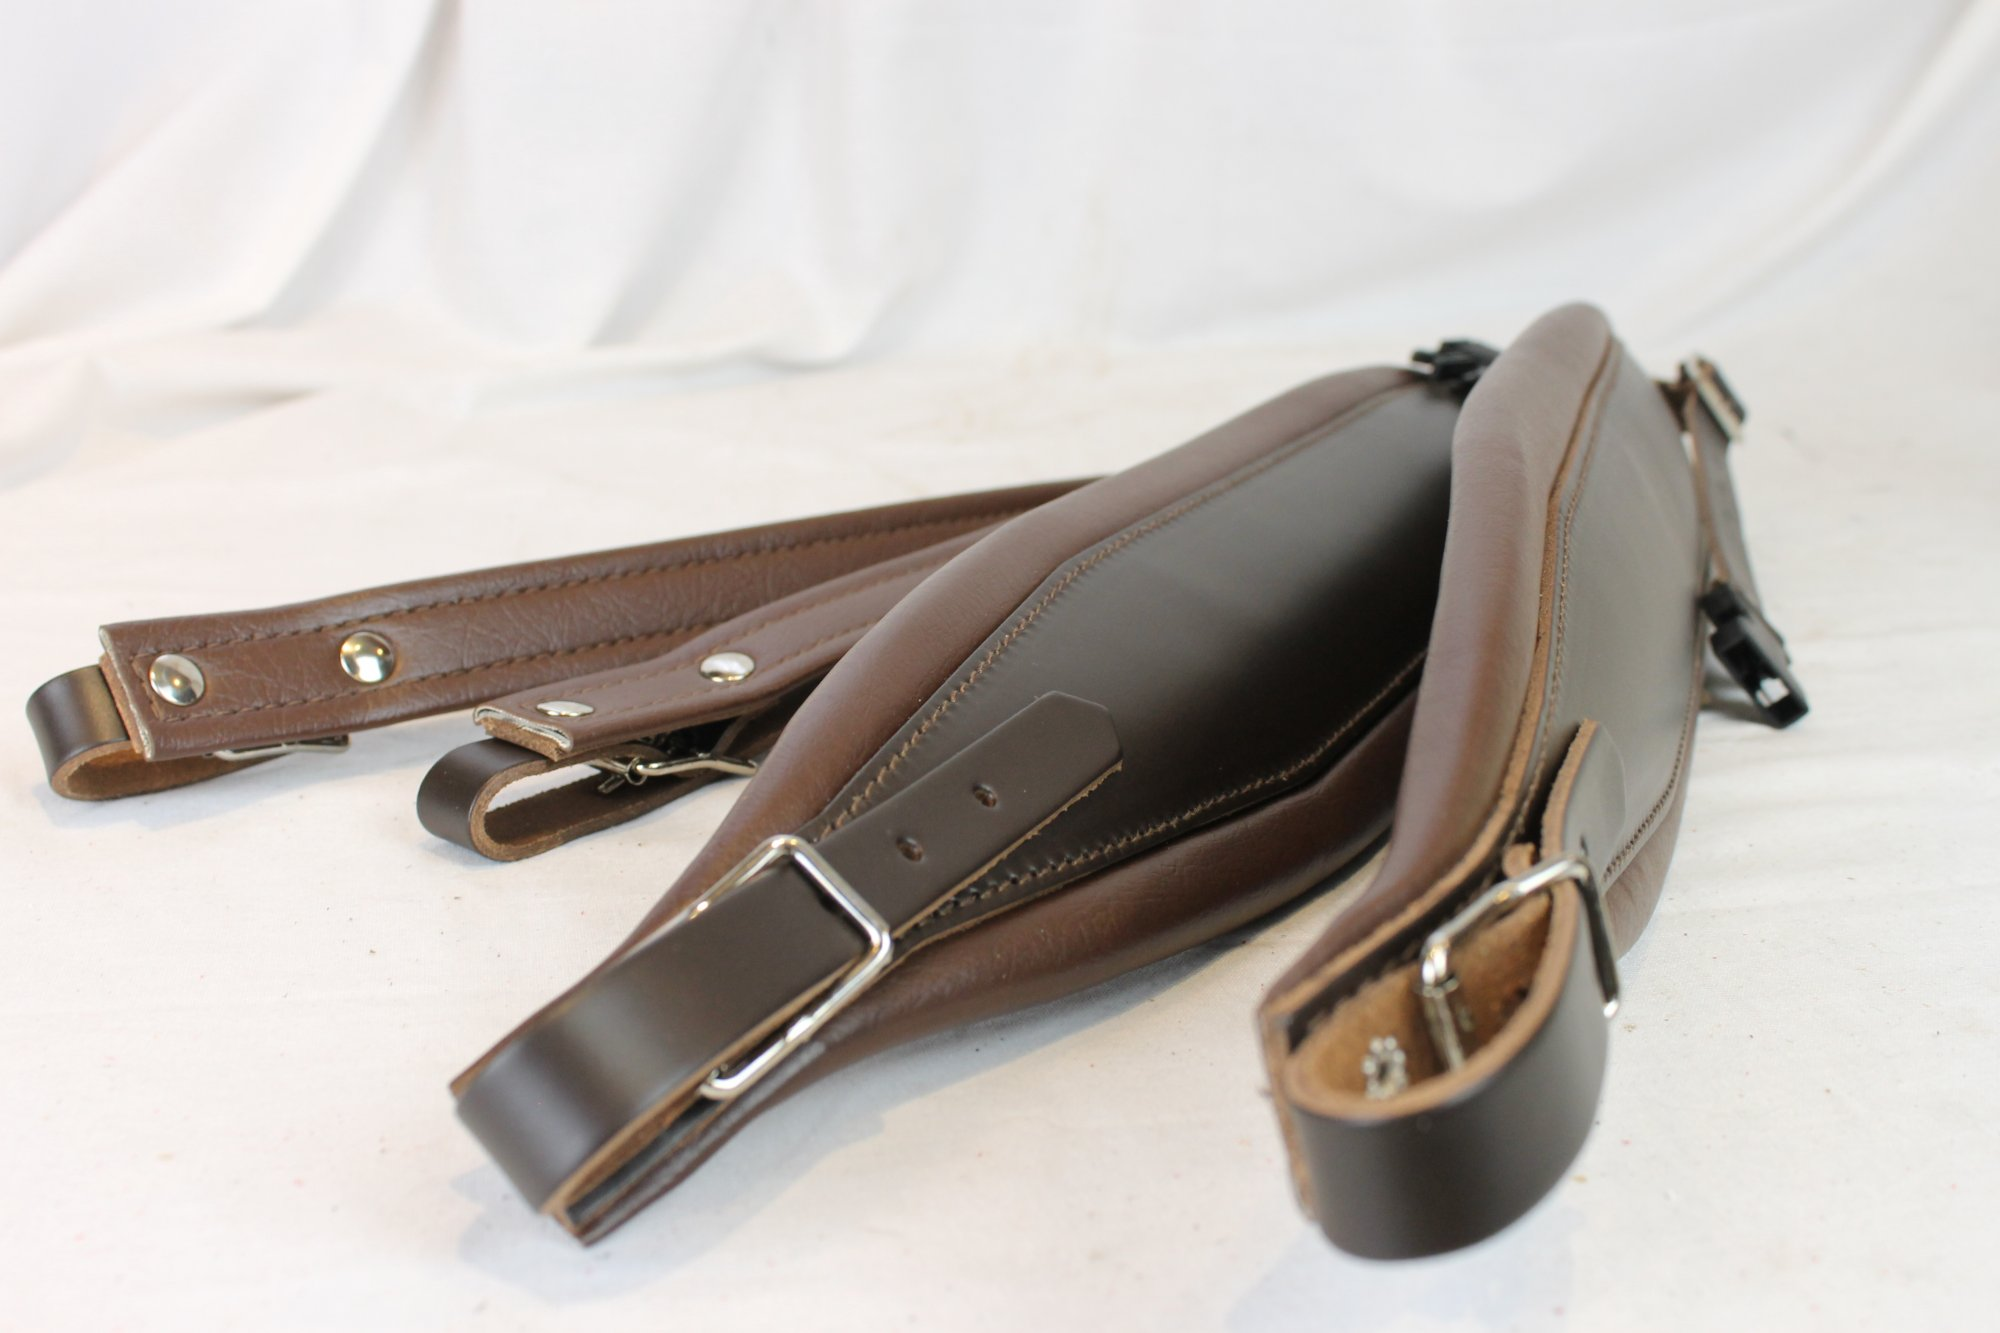 New Brown Leather Fuselli Accordion Shoulder Straps With Back Straps Width (10cm / 3.9 inch) Length (95cm-115cm / 37.4-45.3 inch)